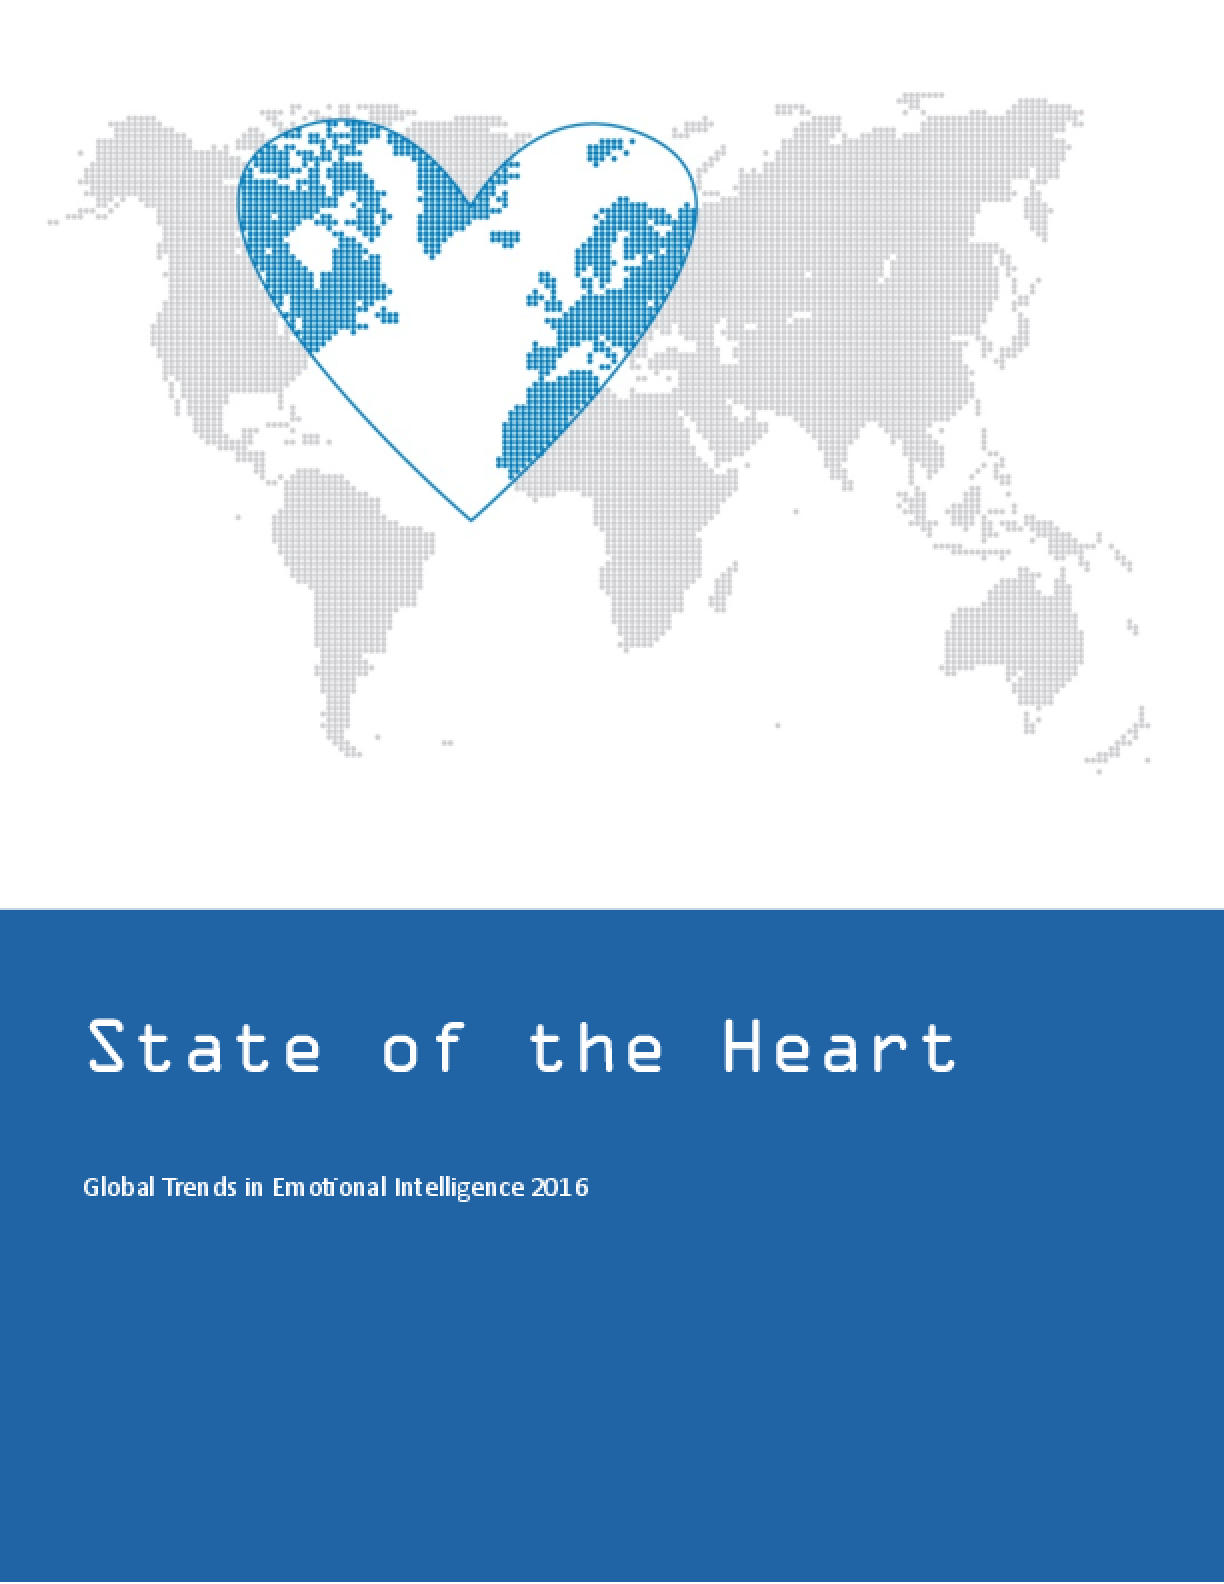 State of the Heart: Global Trends in Emotional Intelligence 2016